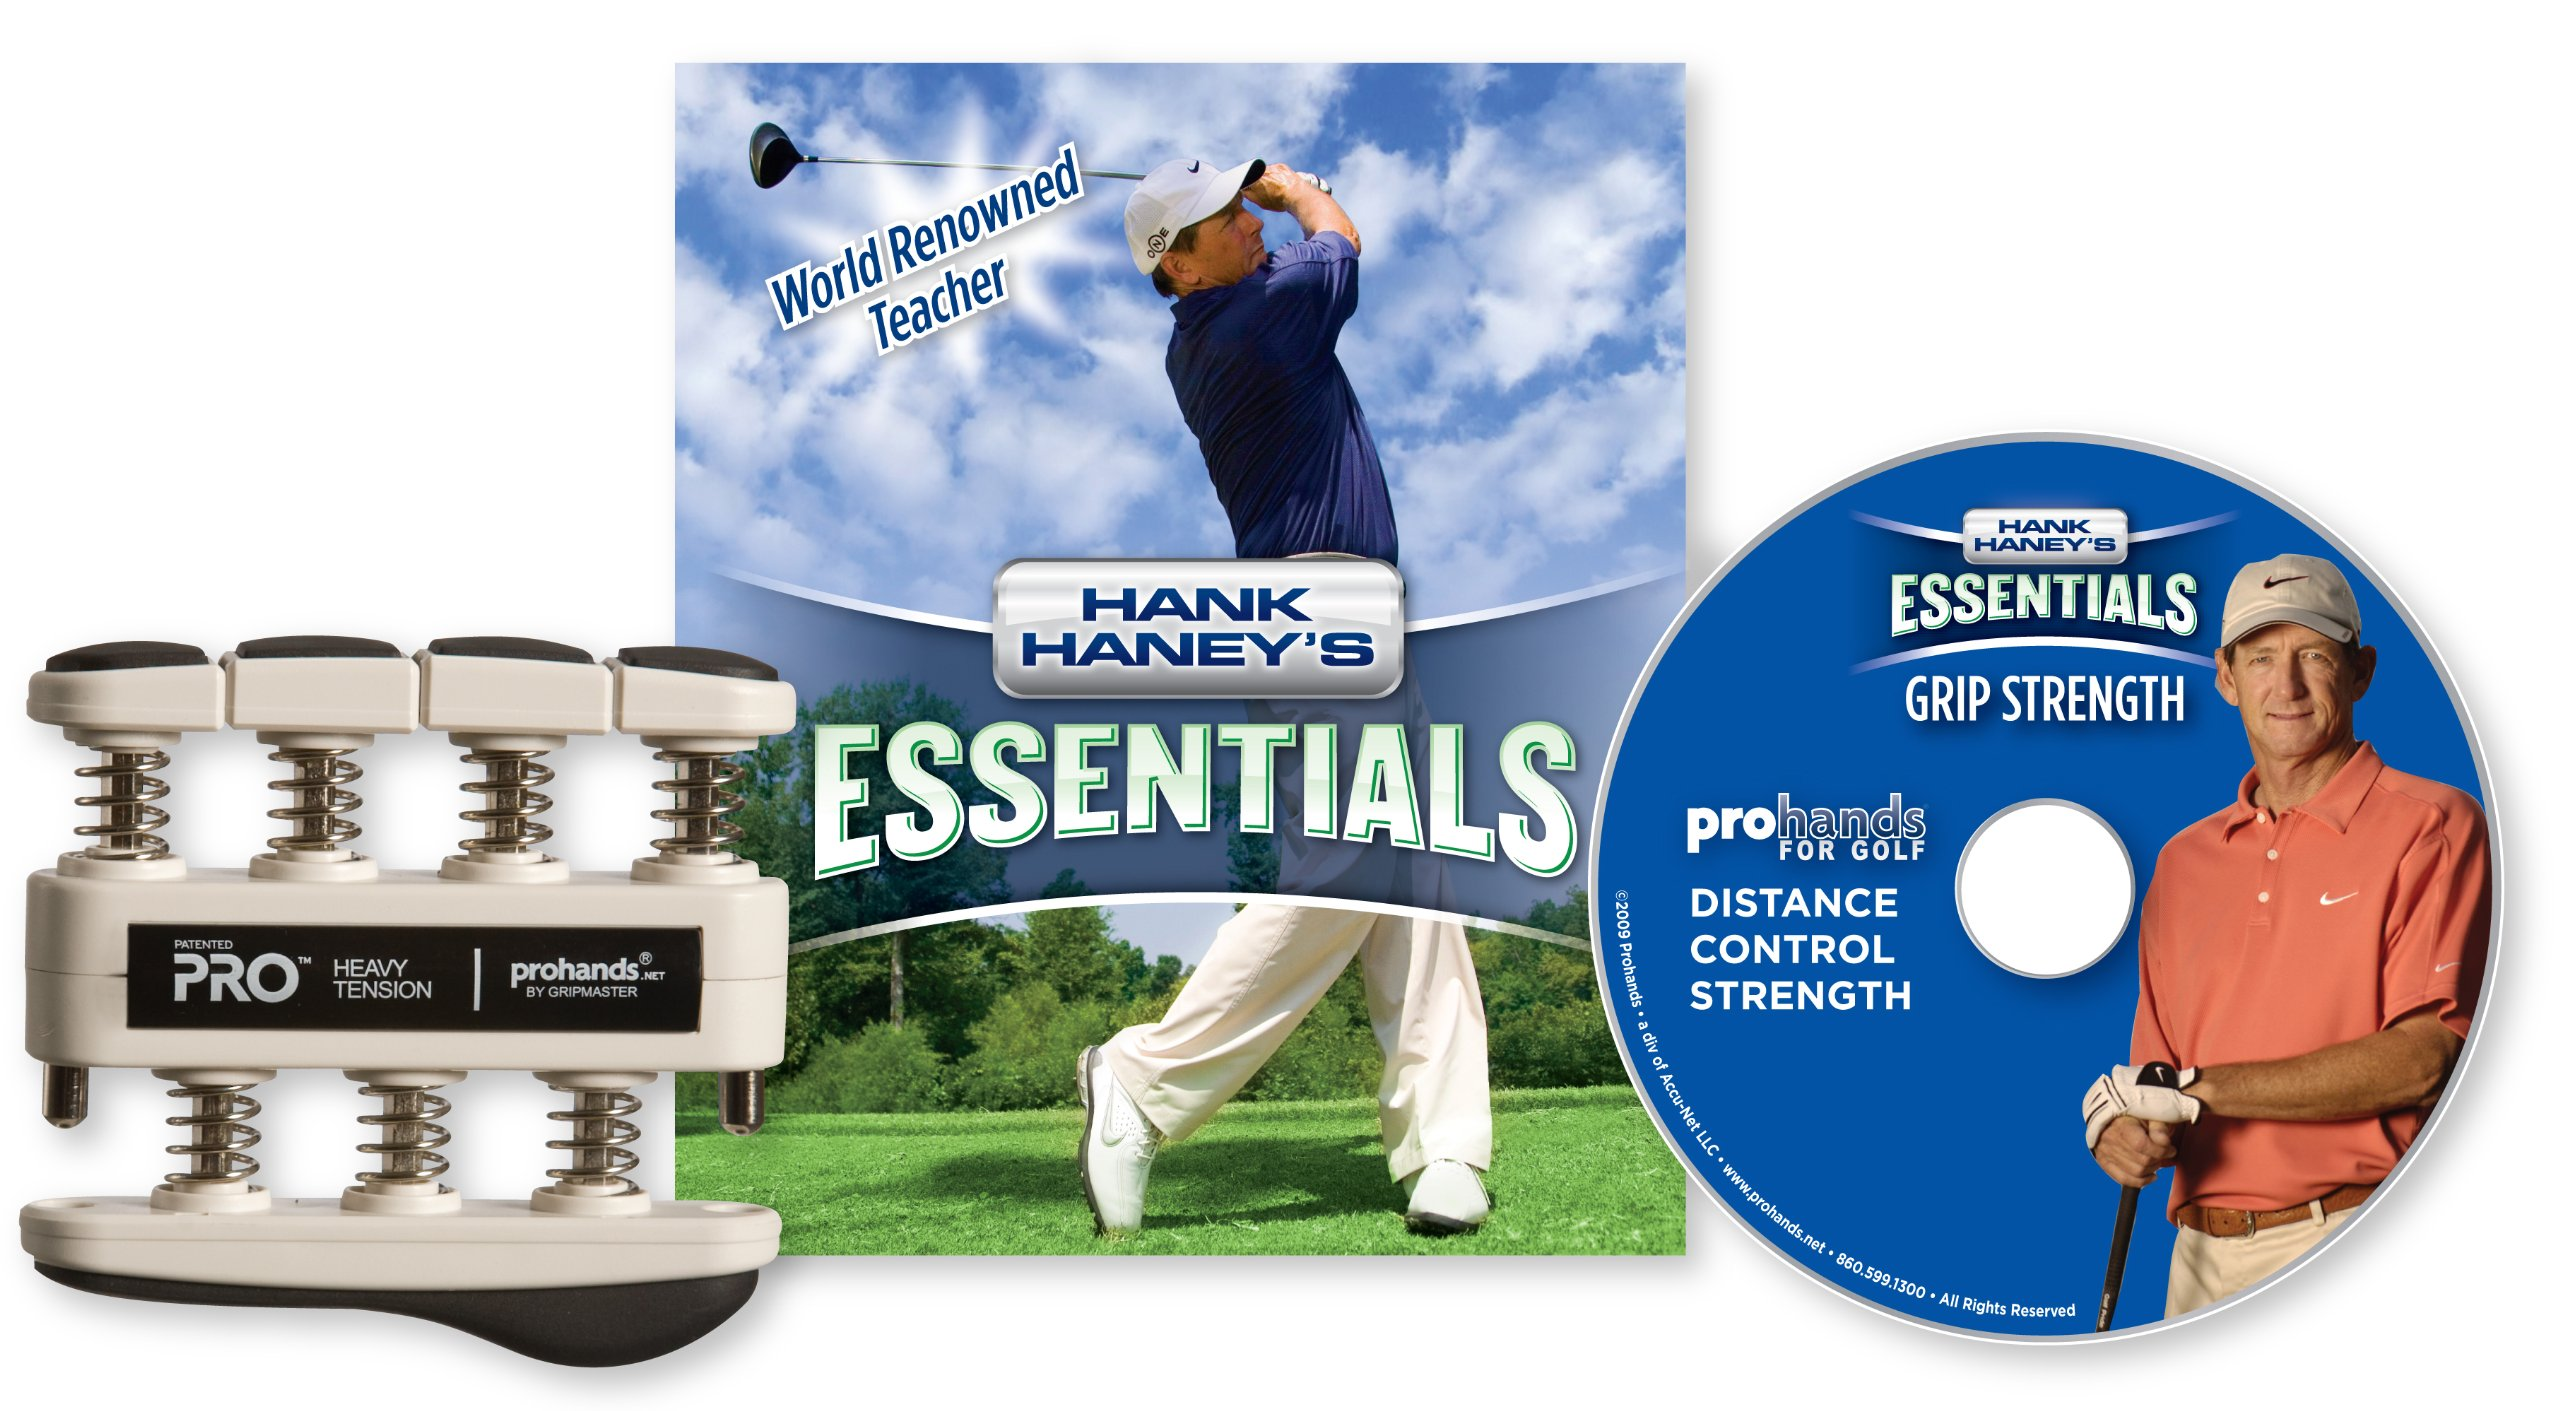 Hank Haney's Essentials Grip Strength DVD and Exerciser, Heavy Tension (9-Pounds per Finger) by Prohands